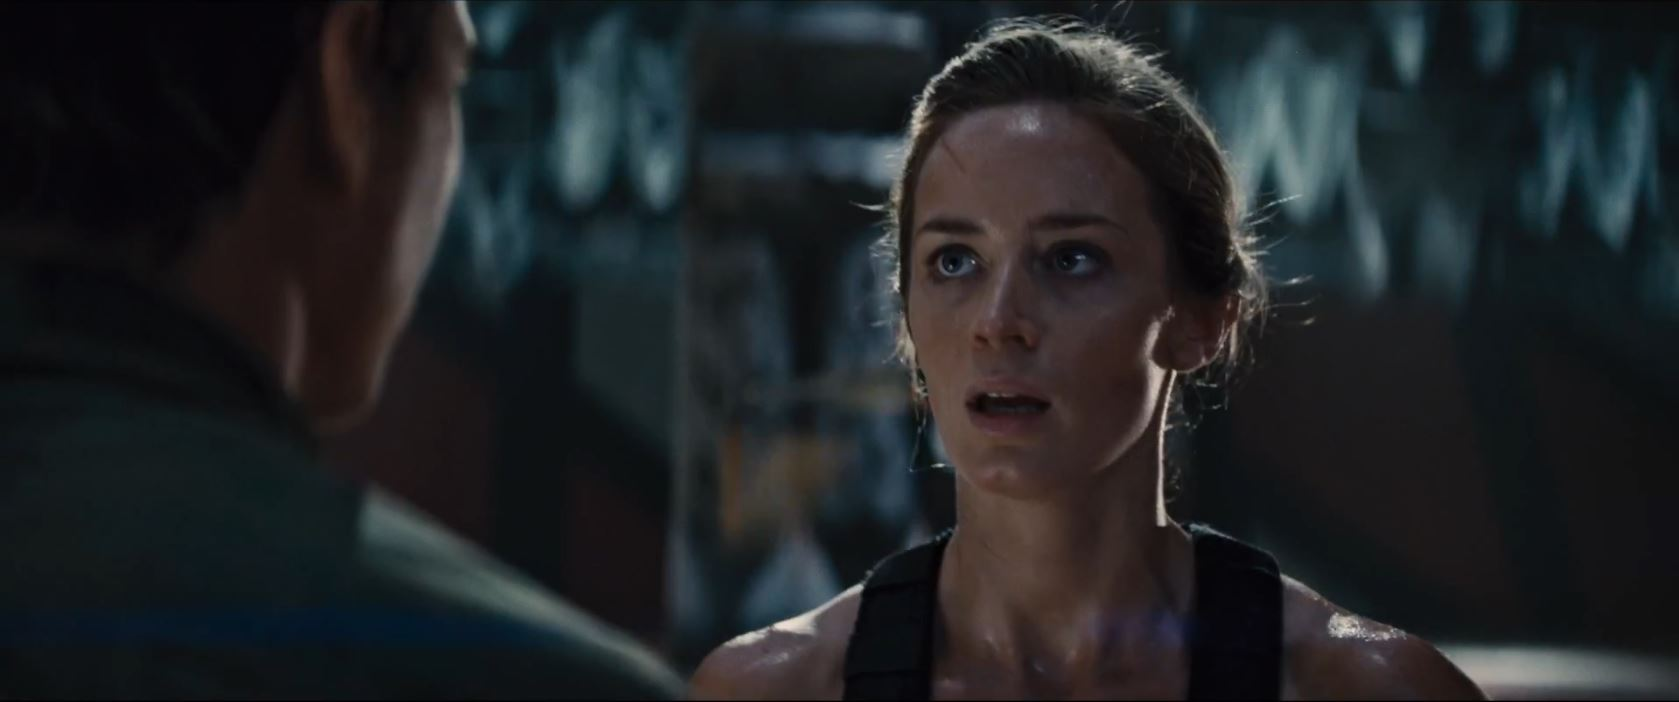 Edge-of-Tomorrow_Emily Blunt07.jpg